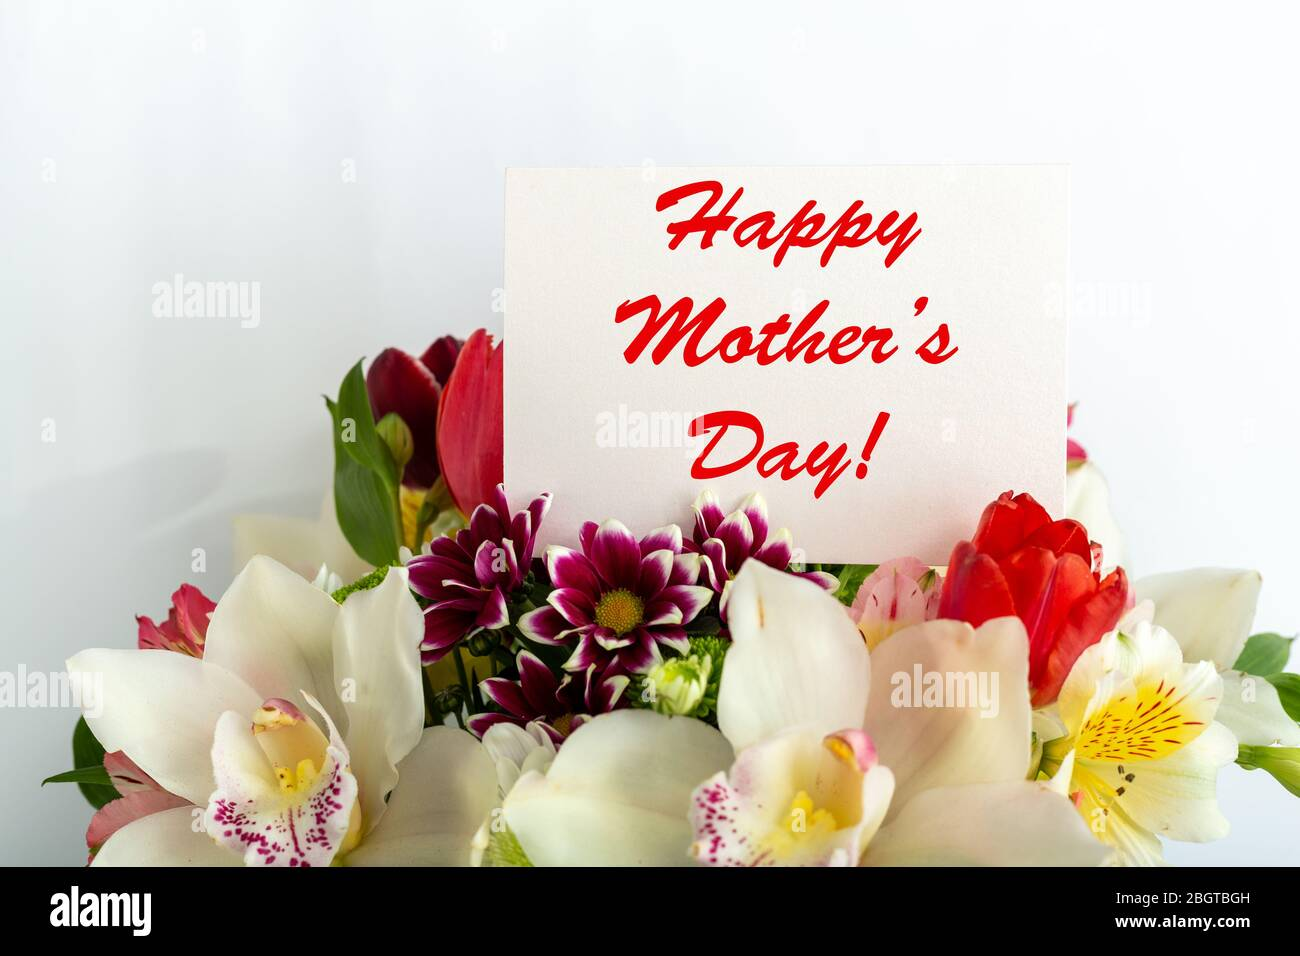 Happy Mothers Day Text On Gift Card In Flower Bouquet On White Background Greeting Card For Mom Flower Delivery Congratulations Card In Flowers For Stock Photo Alamy